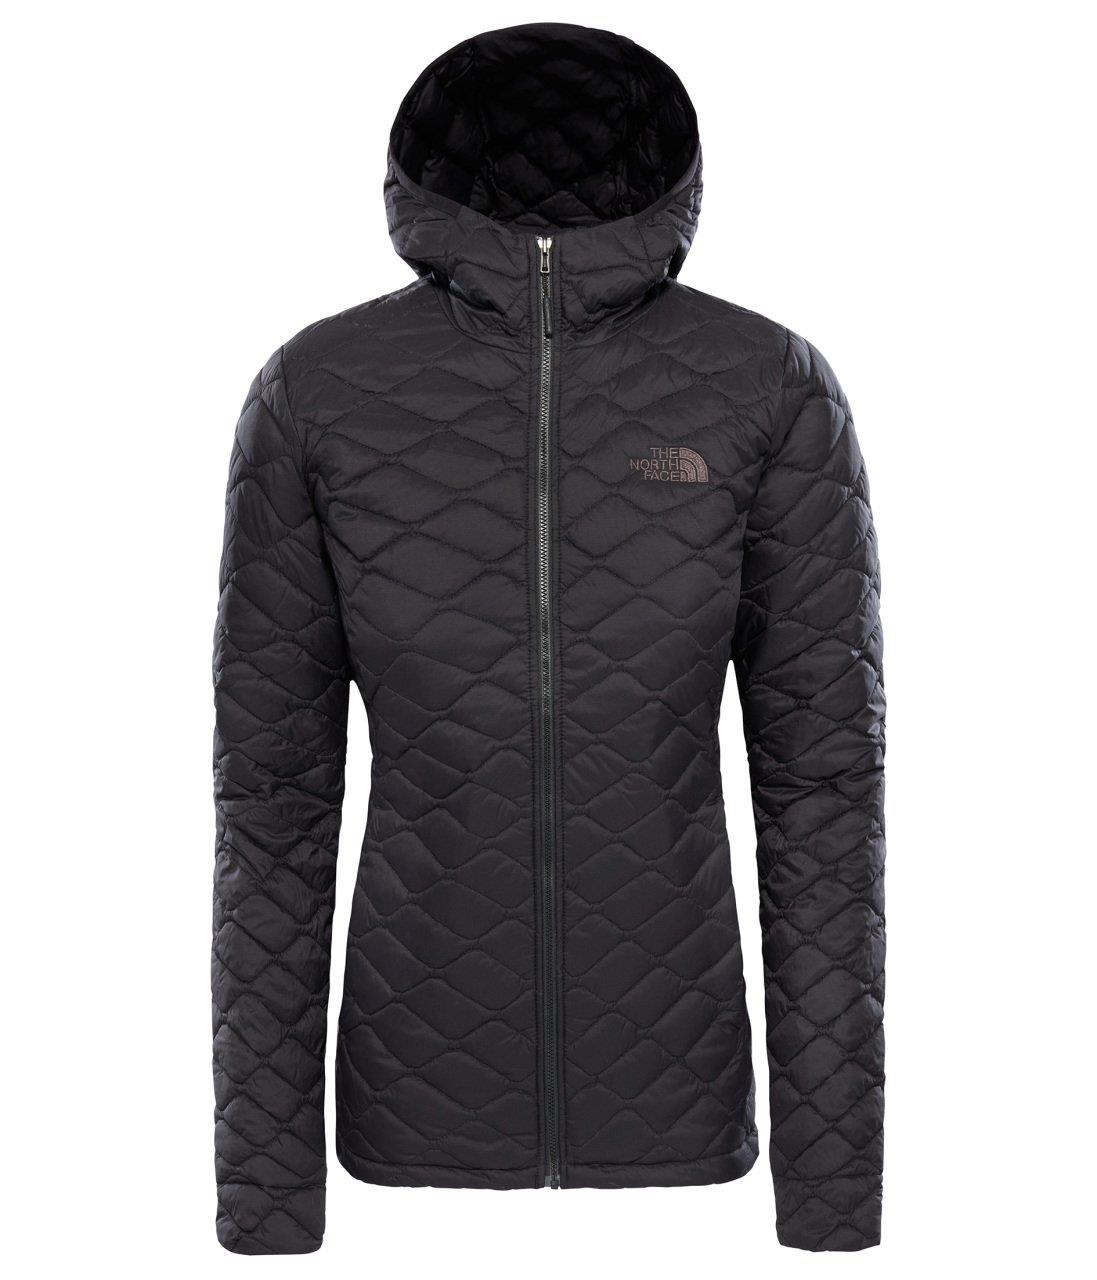 The North Face Kadın THERMOBALL Hoodie Ceket T93RXEXYM